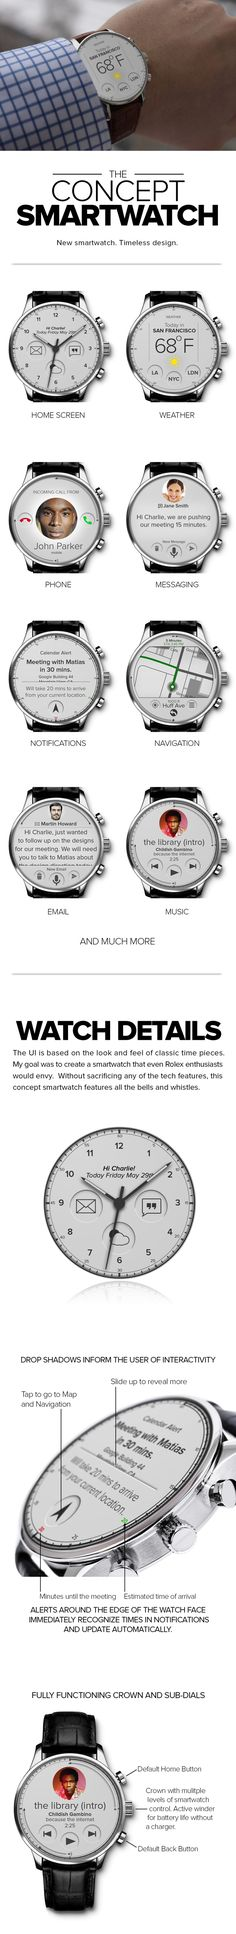 CONCEPT SMARTWATCH by Charlie No, via Behance [Wearable Electronics: http://appstore/iotmonitor Smart Watches & Wearable Electronics for SALE: http://appstore/iotmonitor